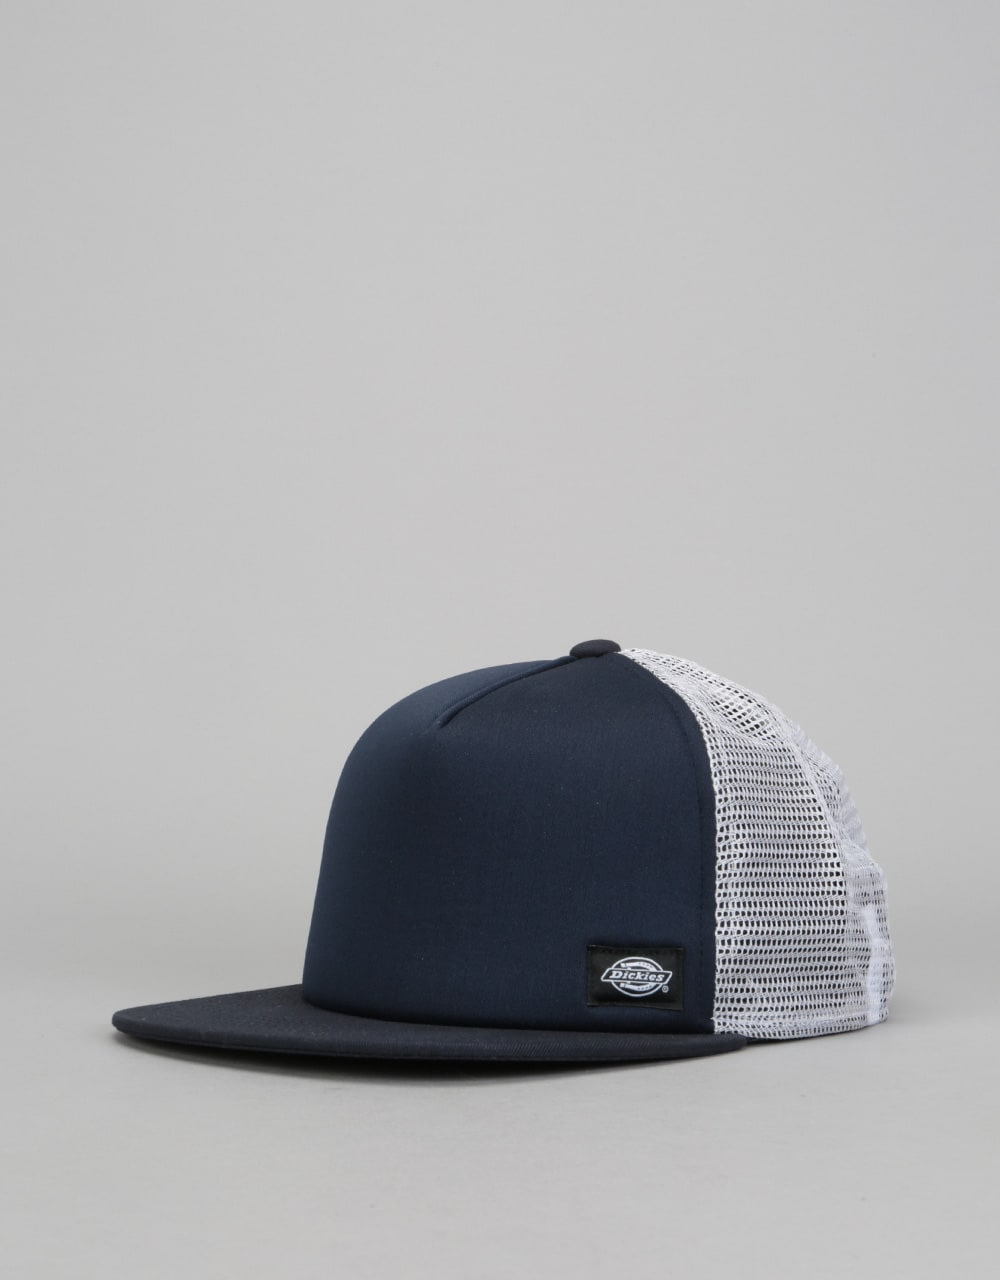 Dickies Fort Jones Mesh Cap - Dark Navy  ba8773deba11